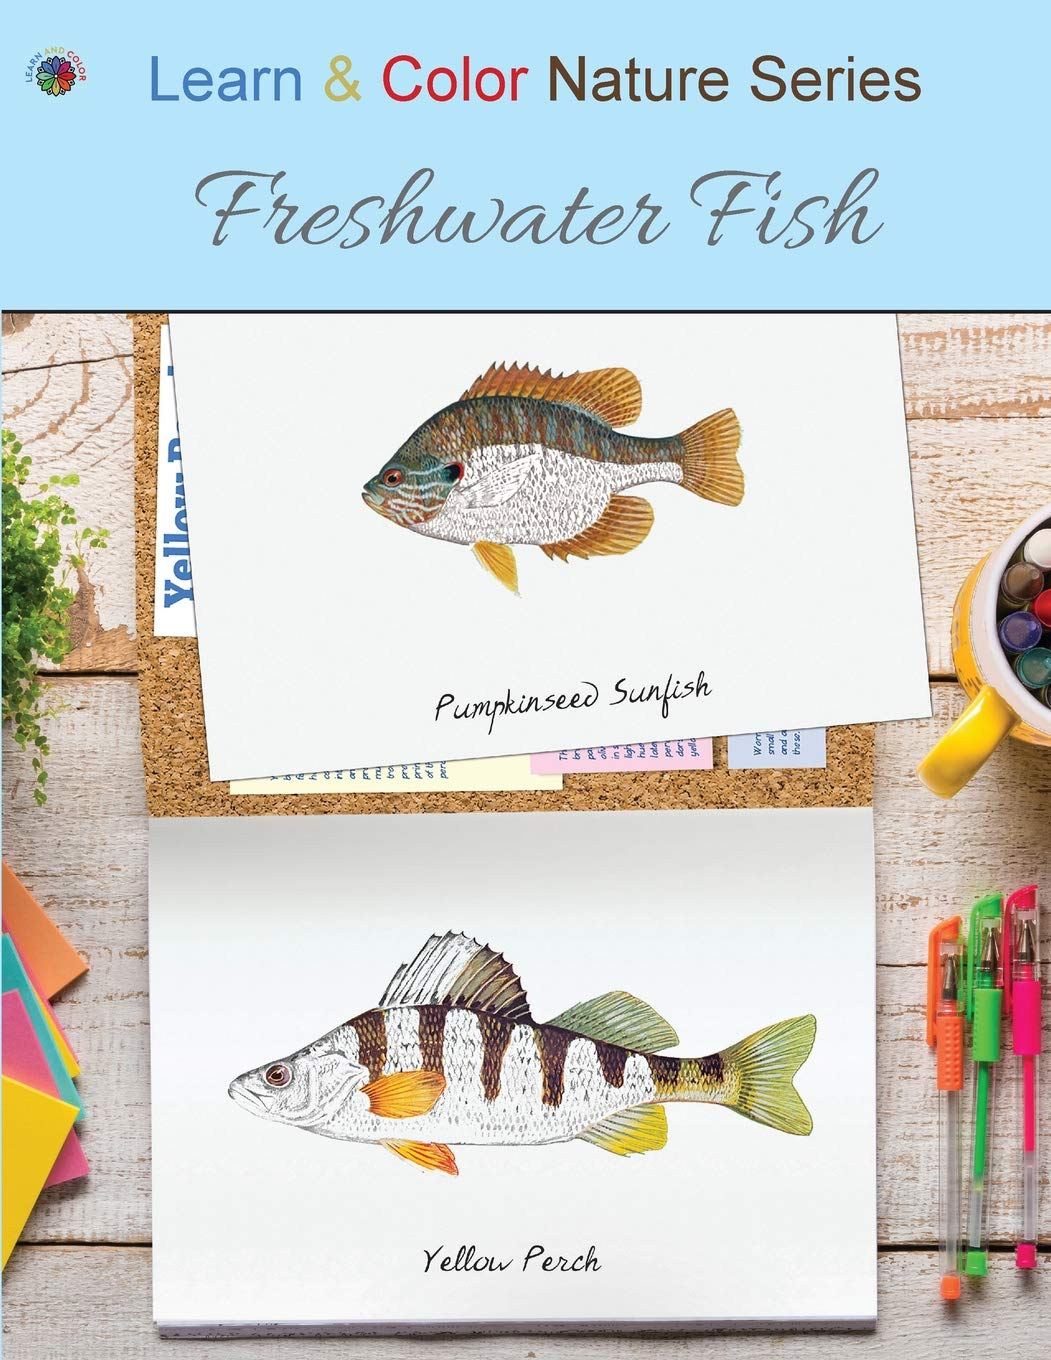 Freshwater Fish Learn Color Nature product image